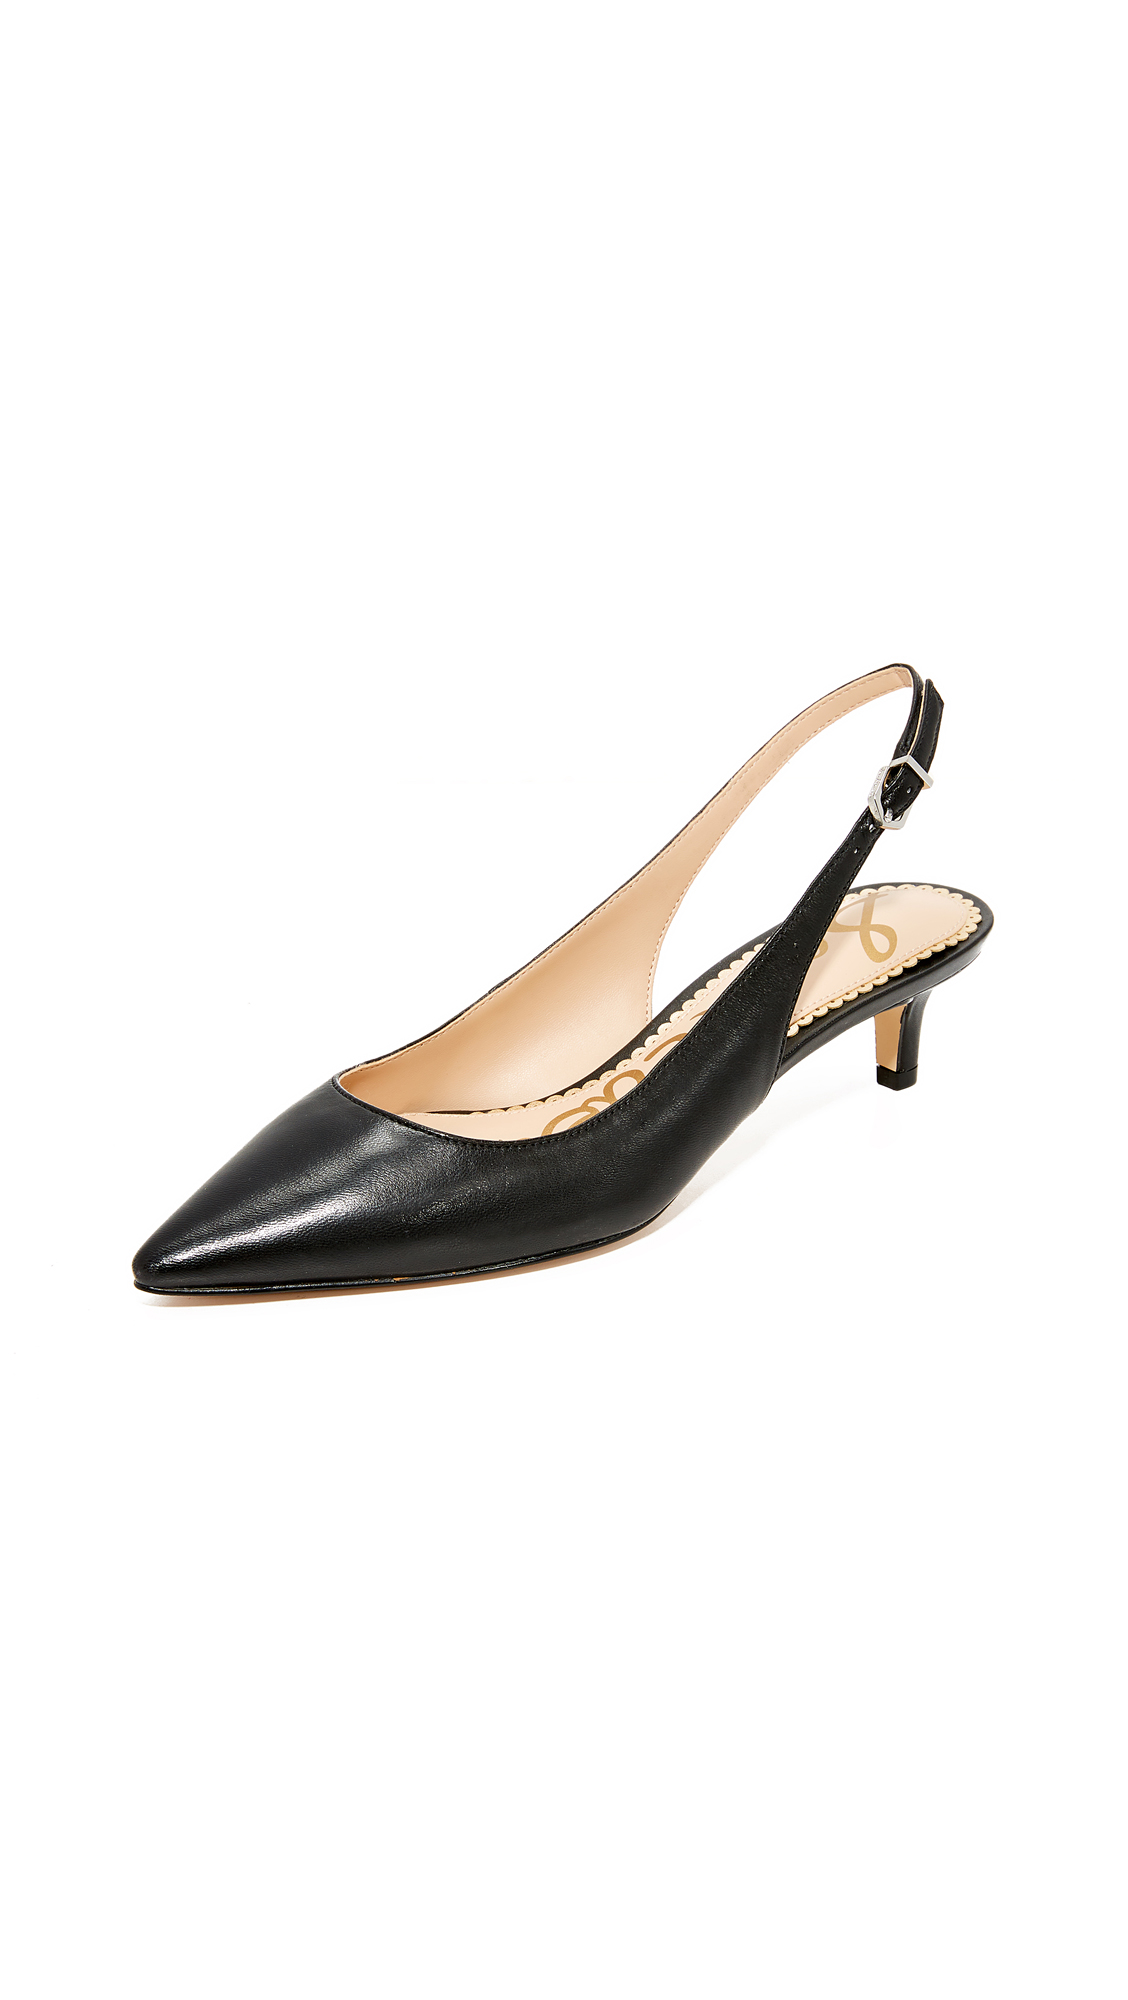 Sam Edelman Ludlow Slingback Pumps - Black